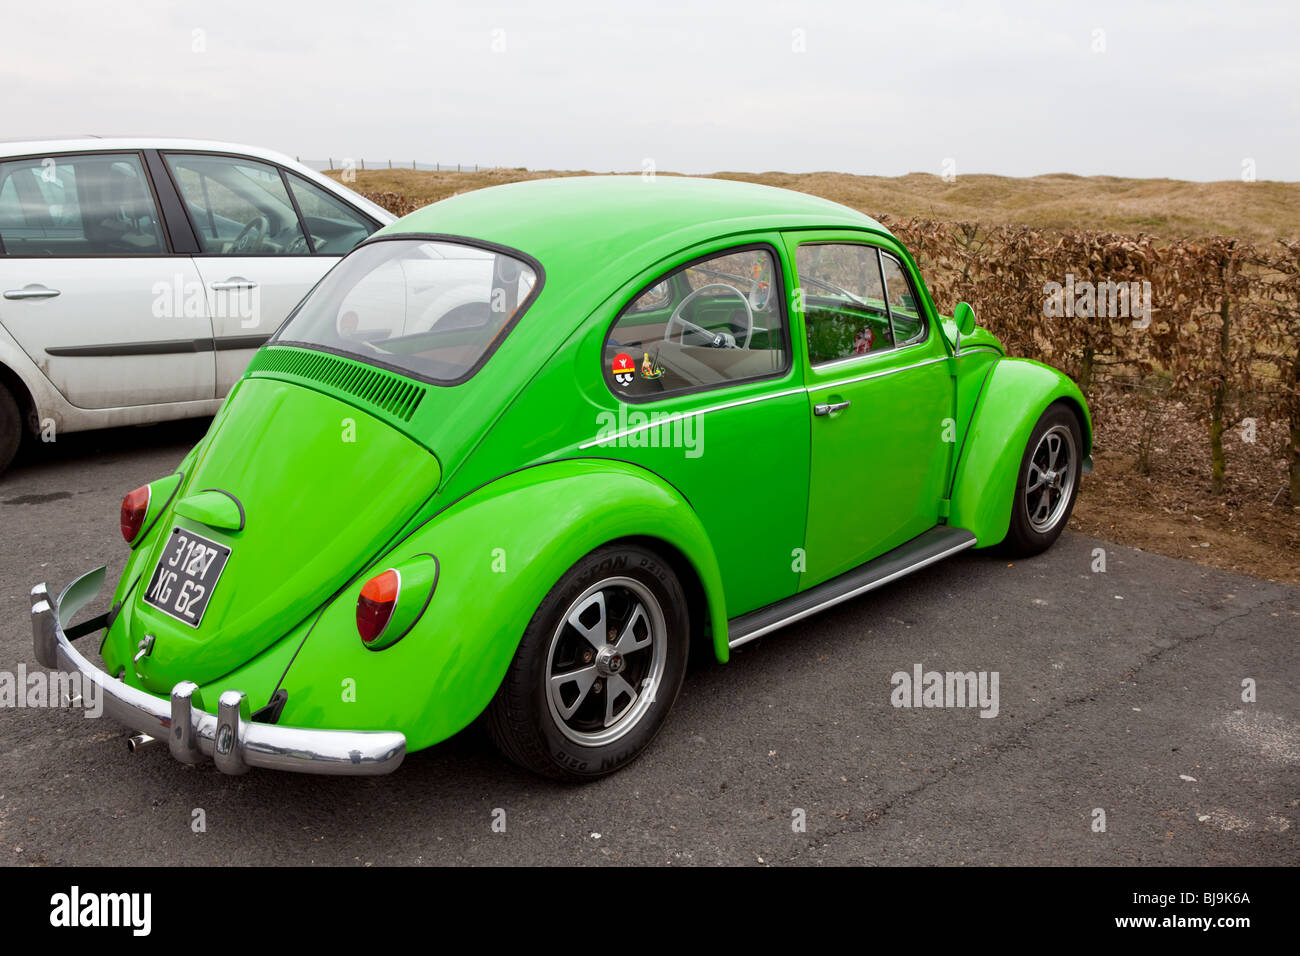 A bright green restored VW Beetle - Stock Image